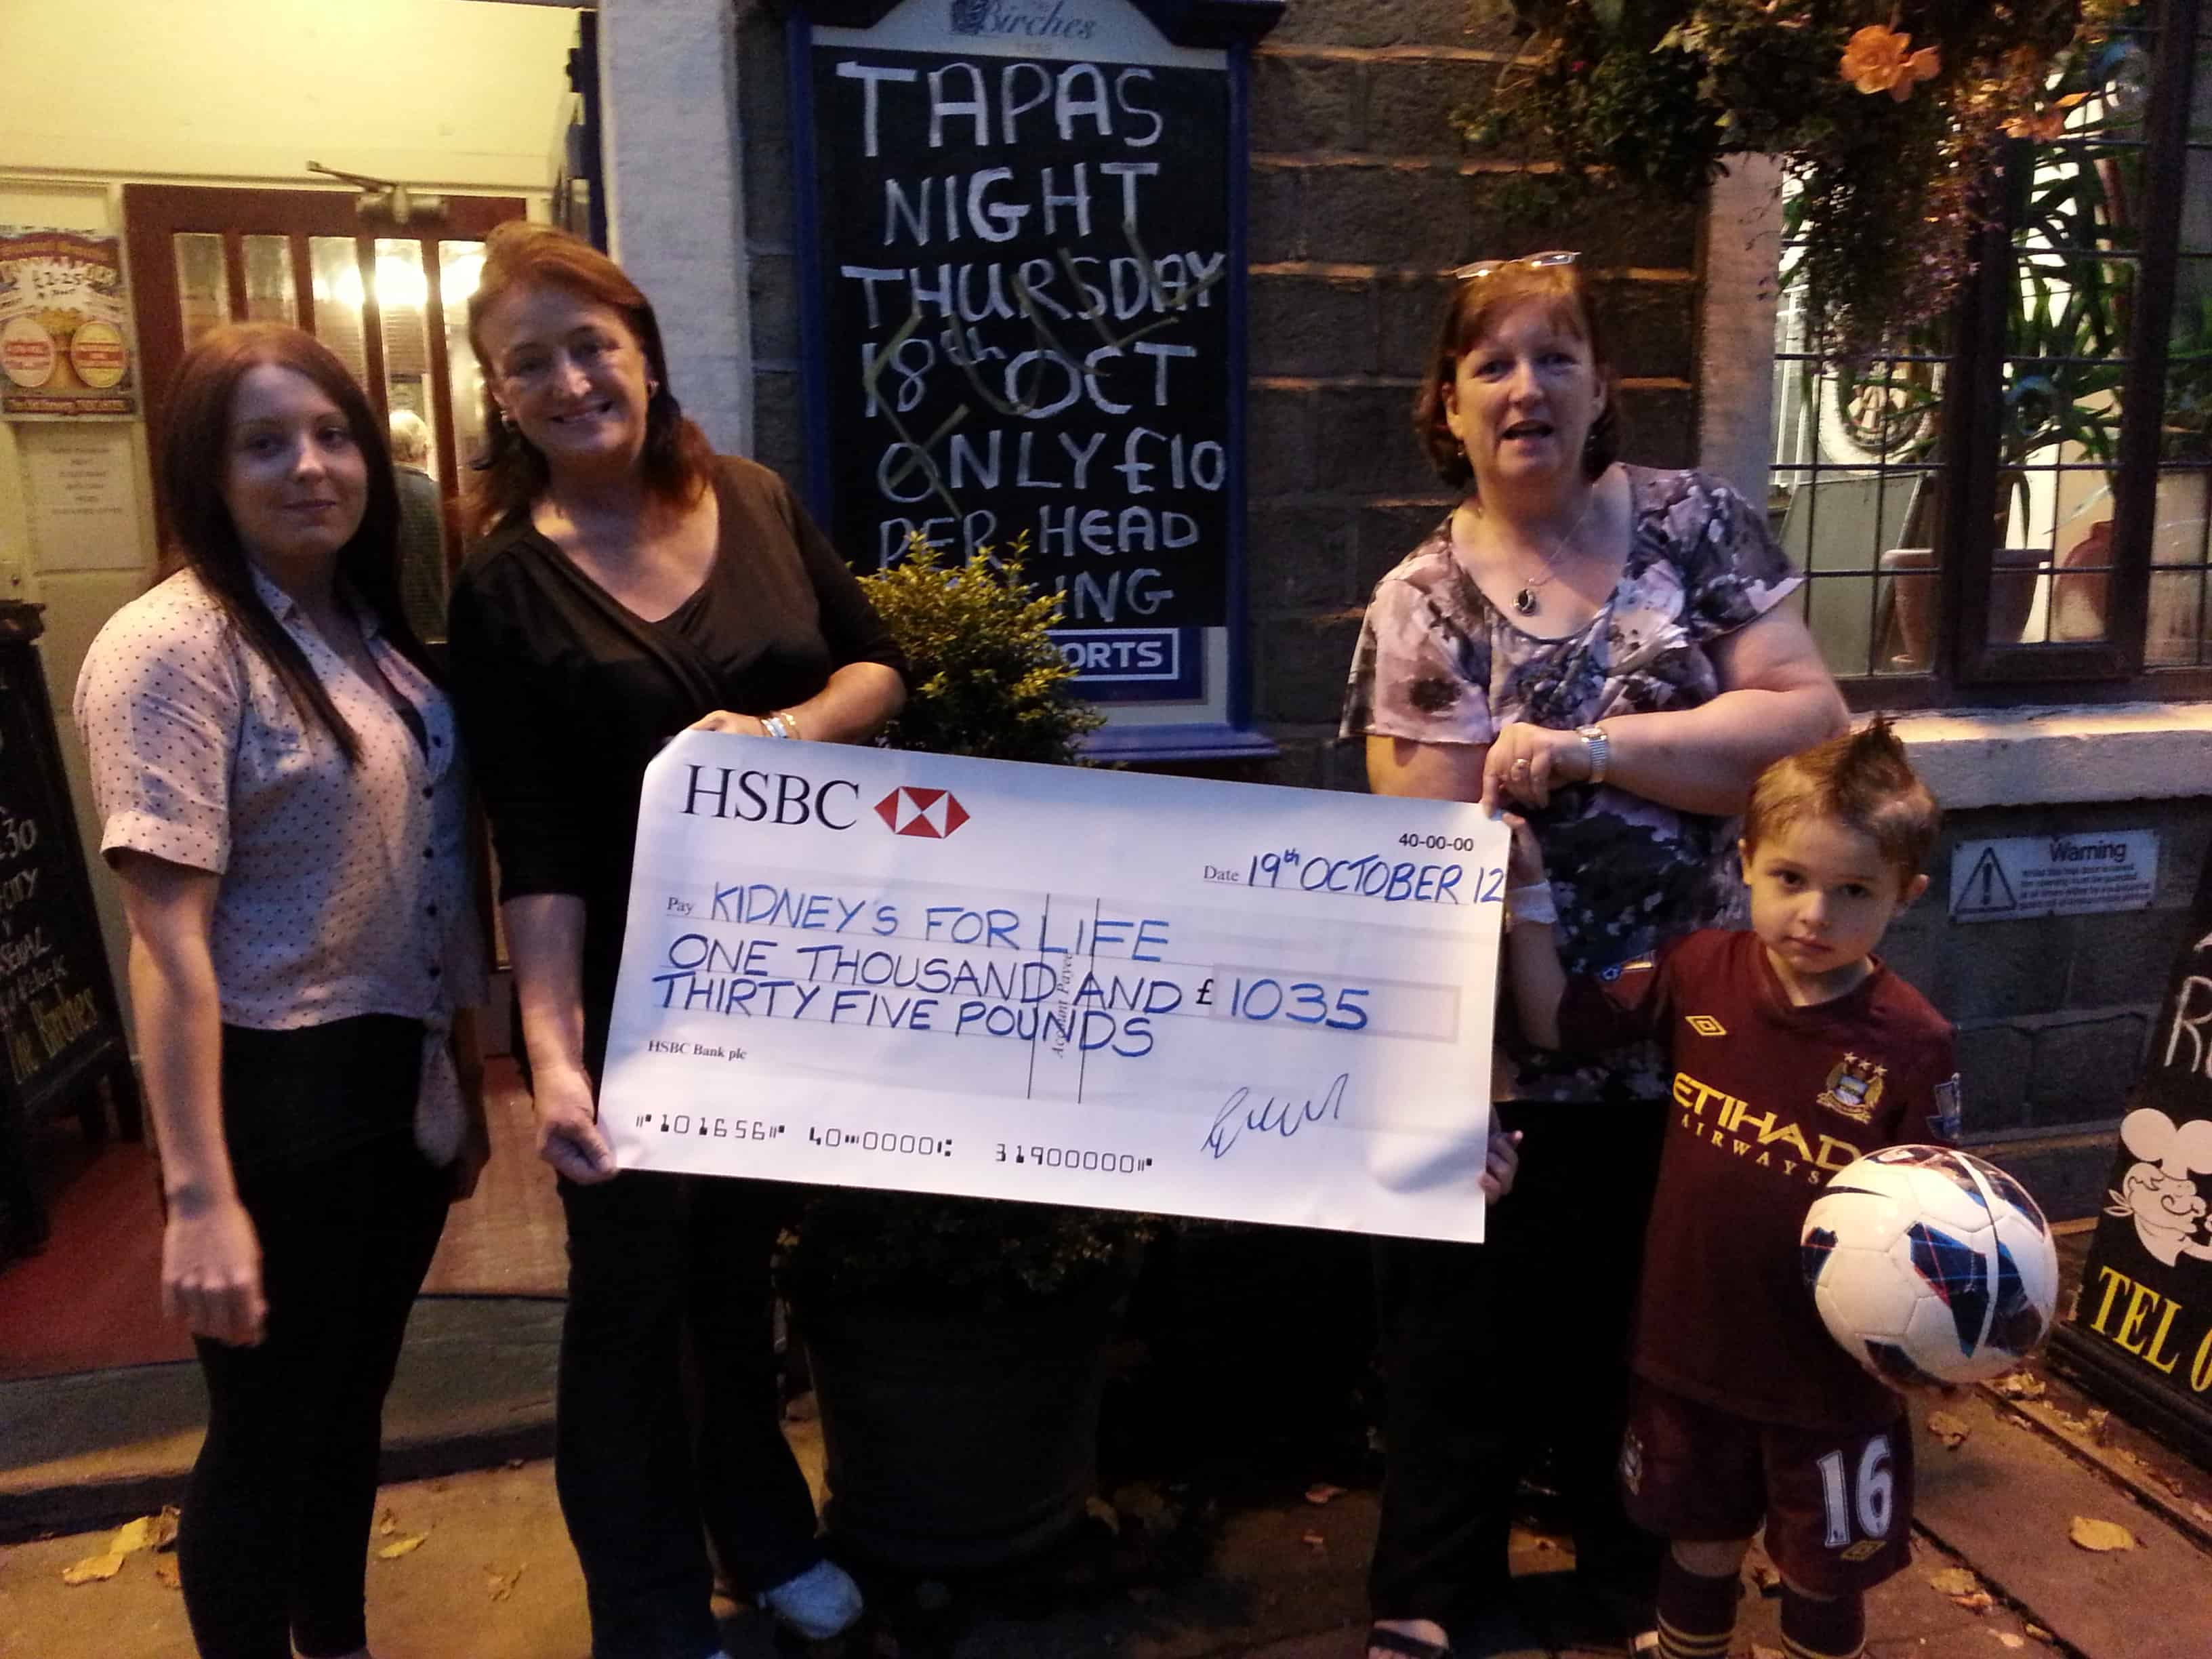 The Birches Hotel staff present cheque to Kidneys For Life's Irene Chambers.